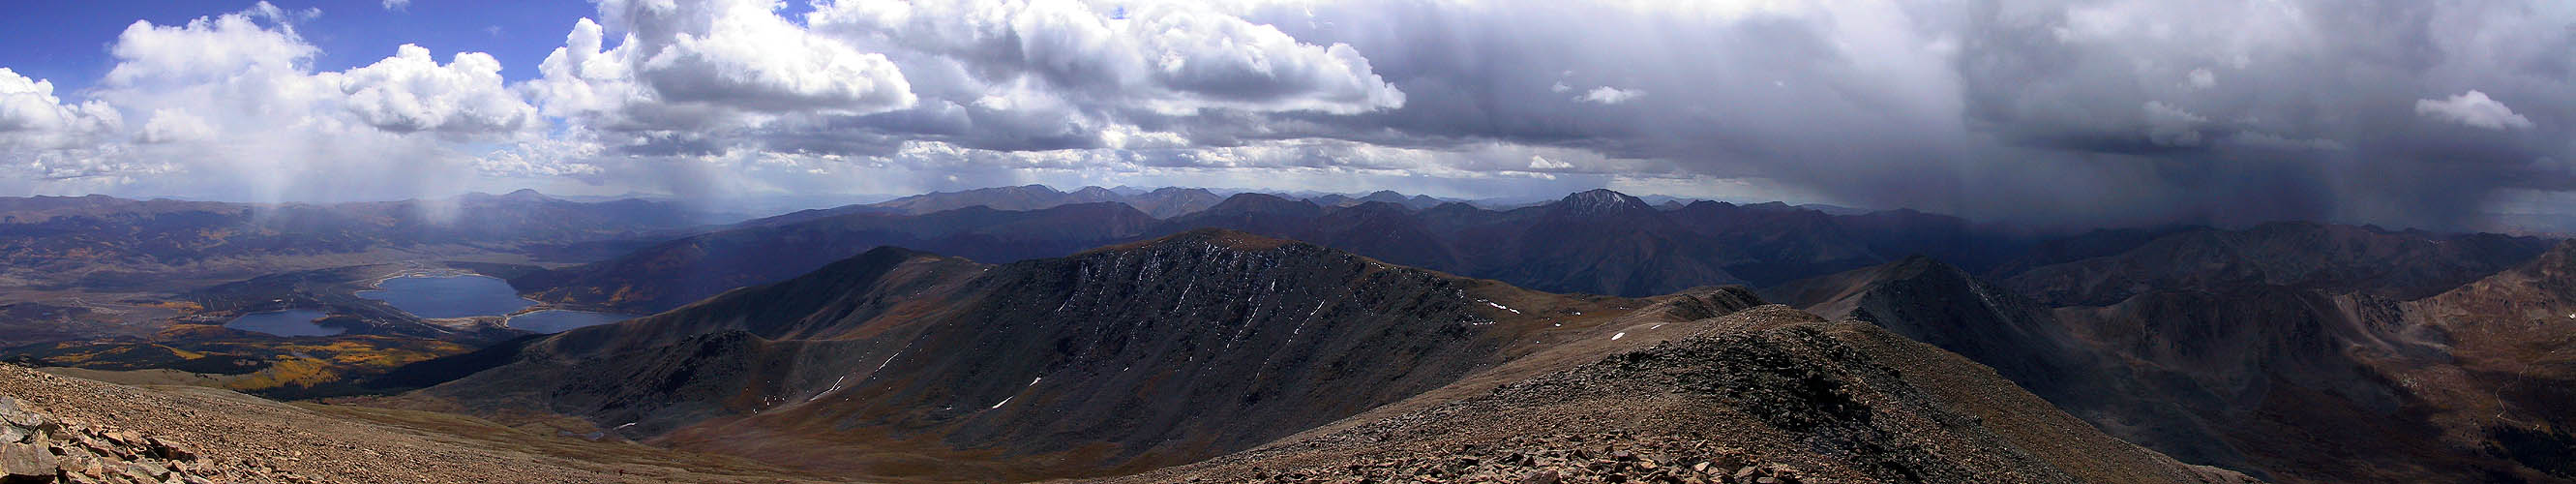 Mt Elbert 2001: Summit Panoramic South